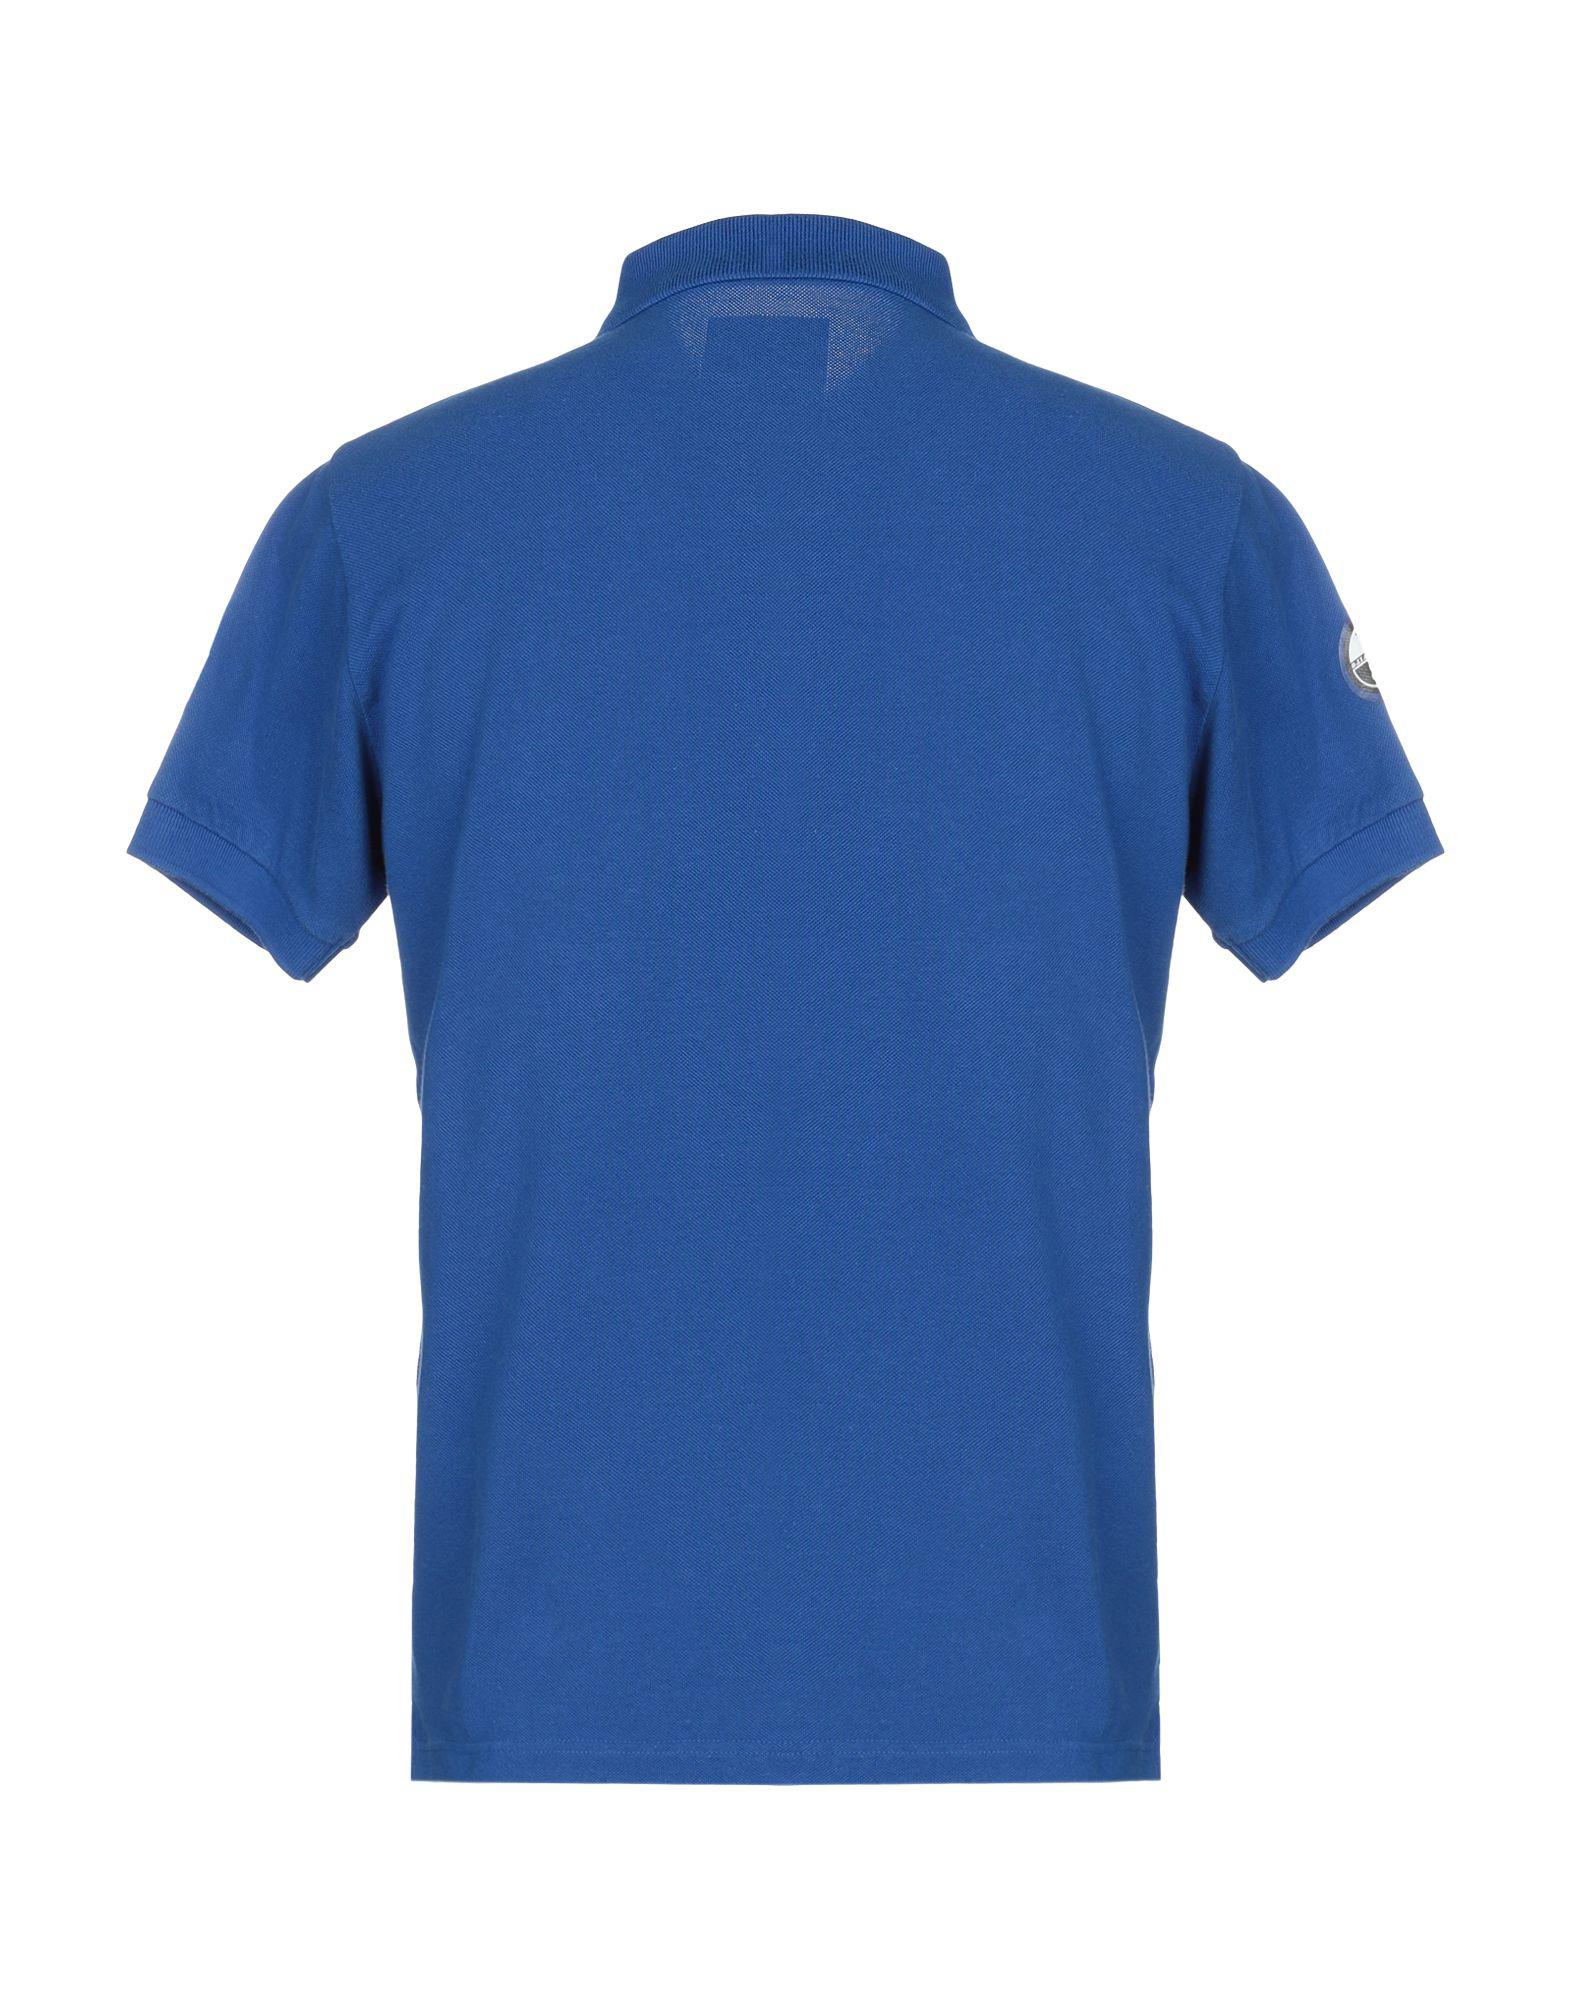 70c1a3e08011 Lyst - North Sails Polo Shirt in Blue for Men